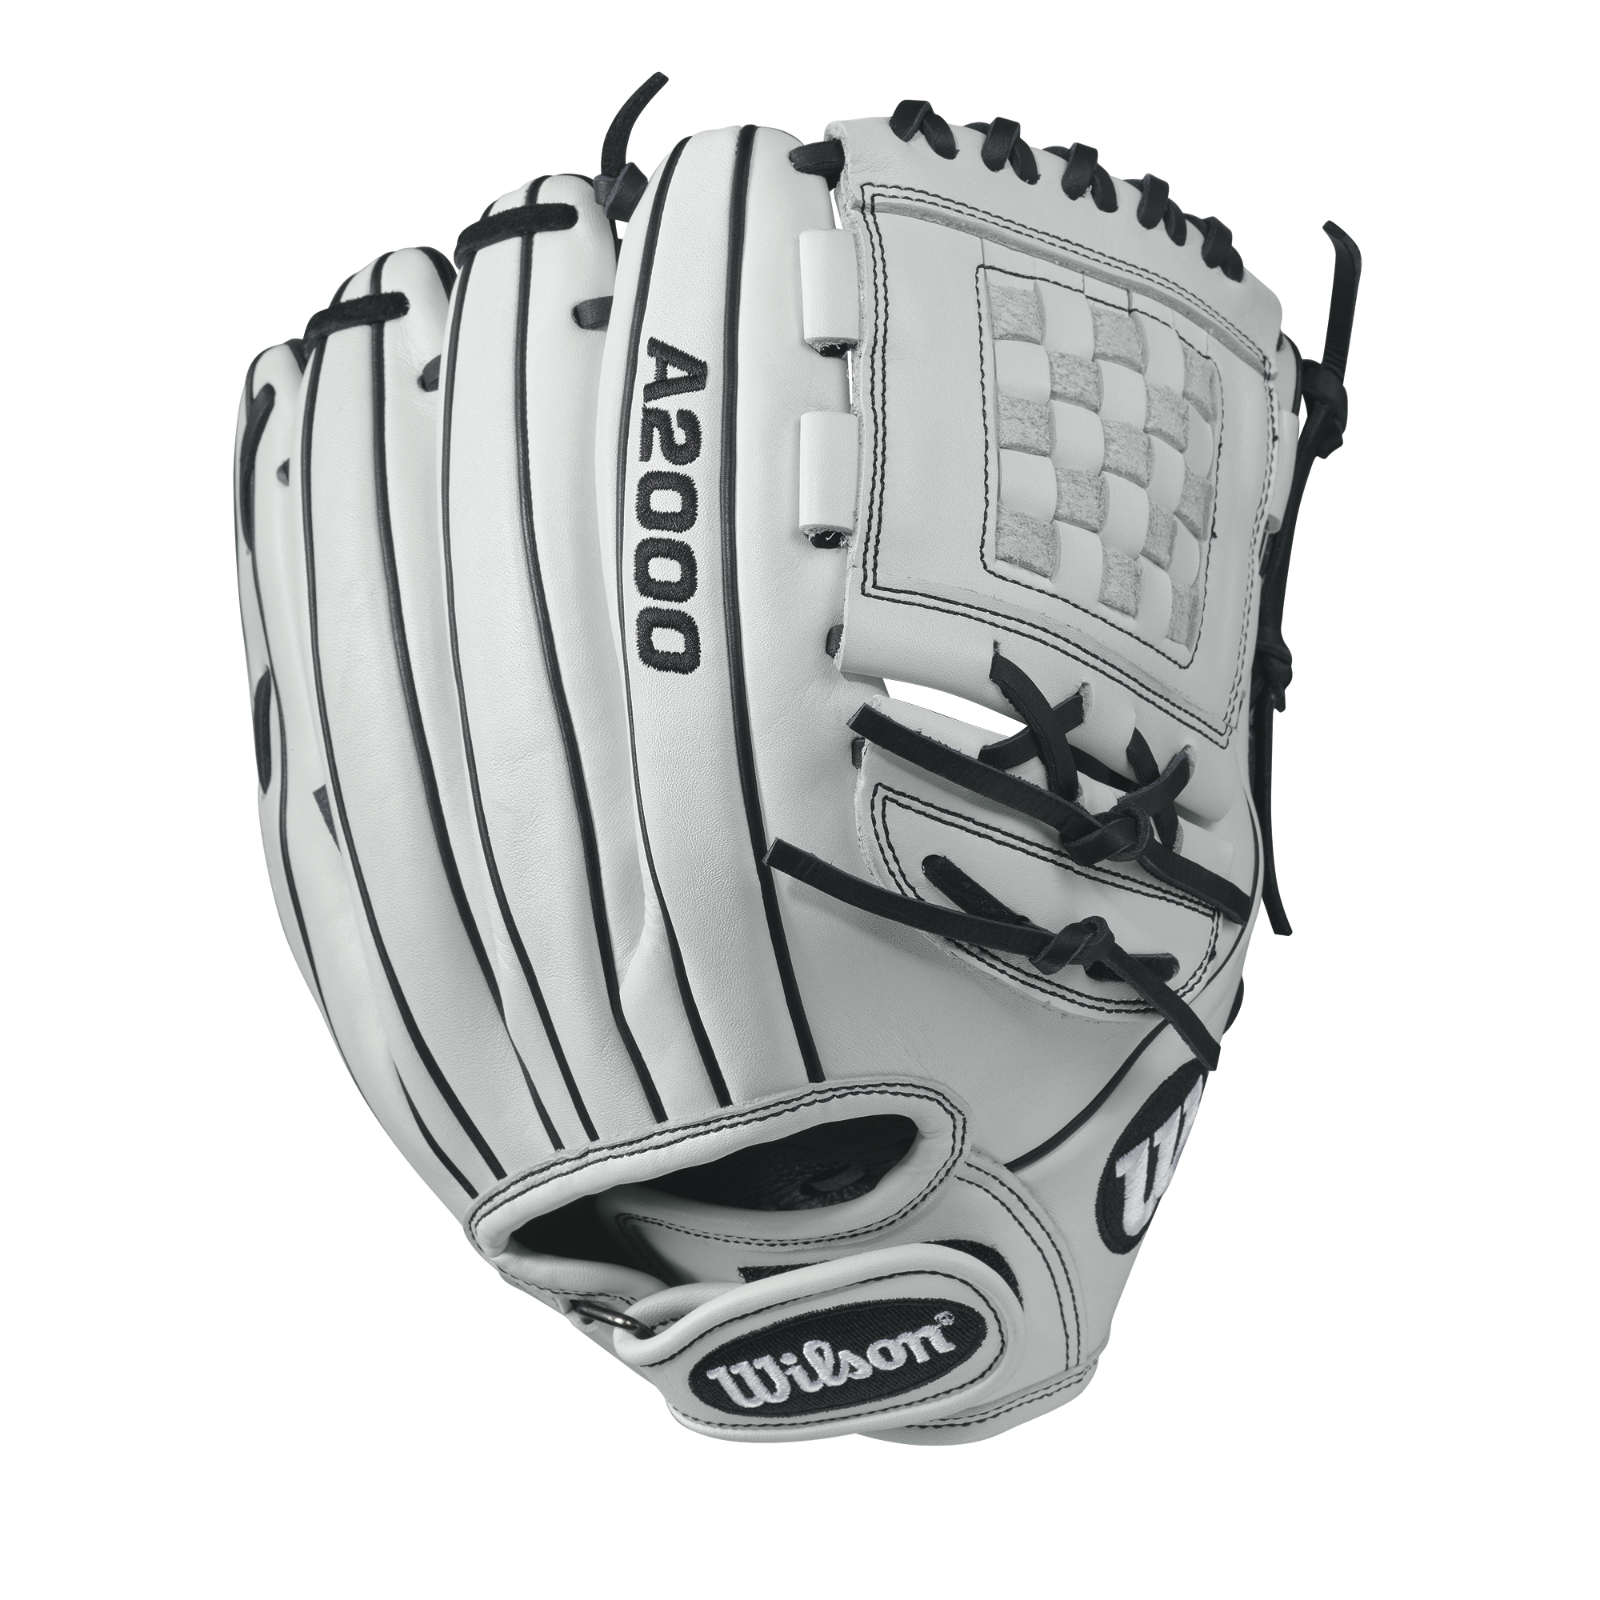 Brand New Wilson A2000 P12 12 Fastpitch Softball Glove Wta20rf17p12 Ebay Link Fastpitch Softball Gloves Softball Gloves Fastpitch Softball